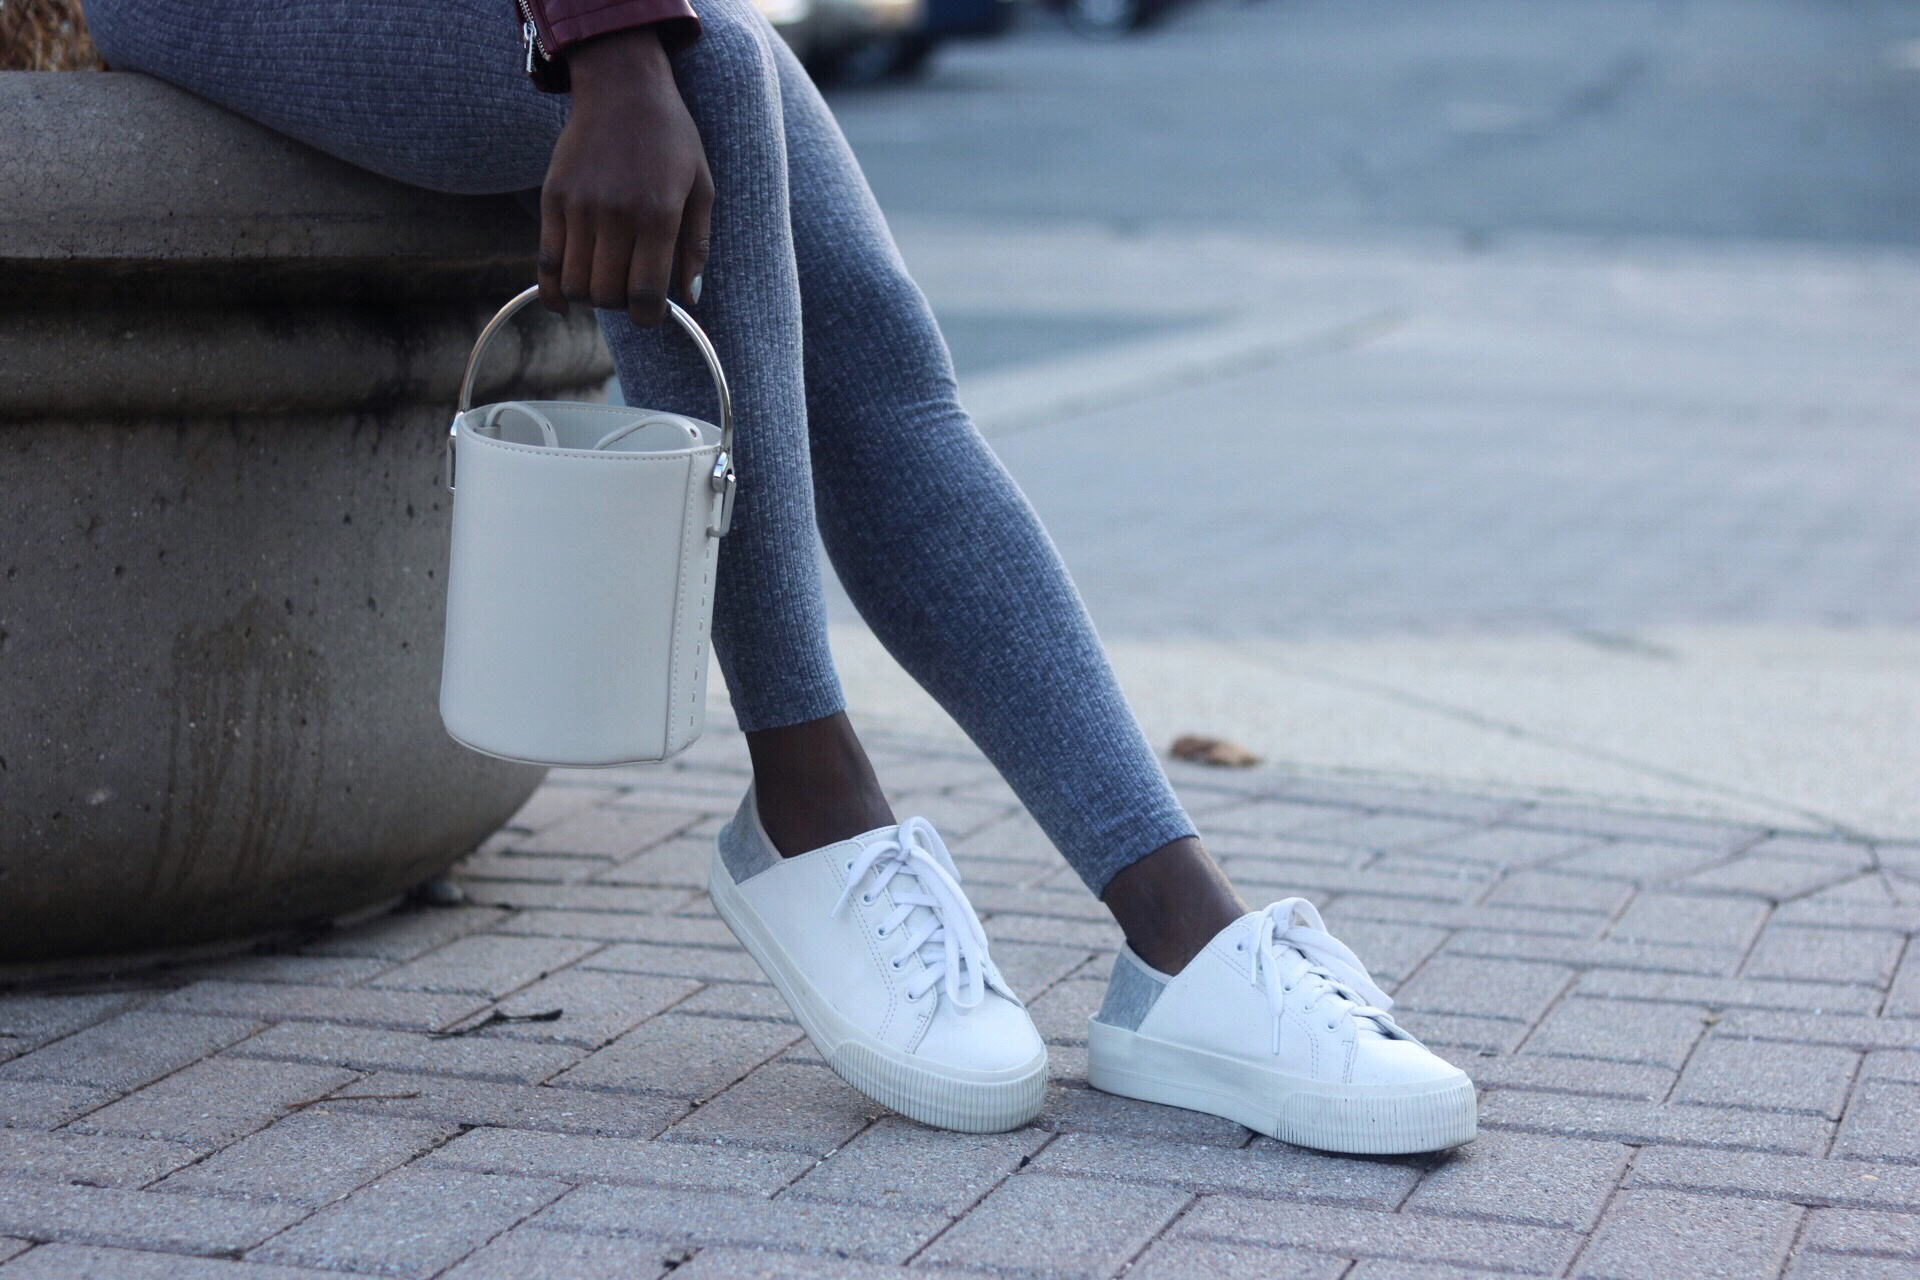 ALT= Jersey Jumpsuit and bucket bag with sneakers